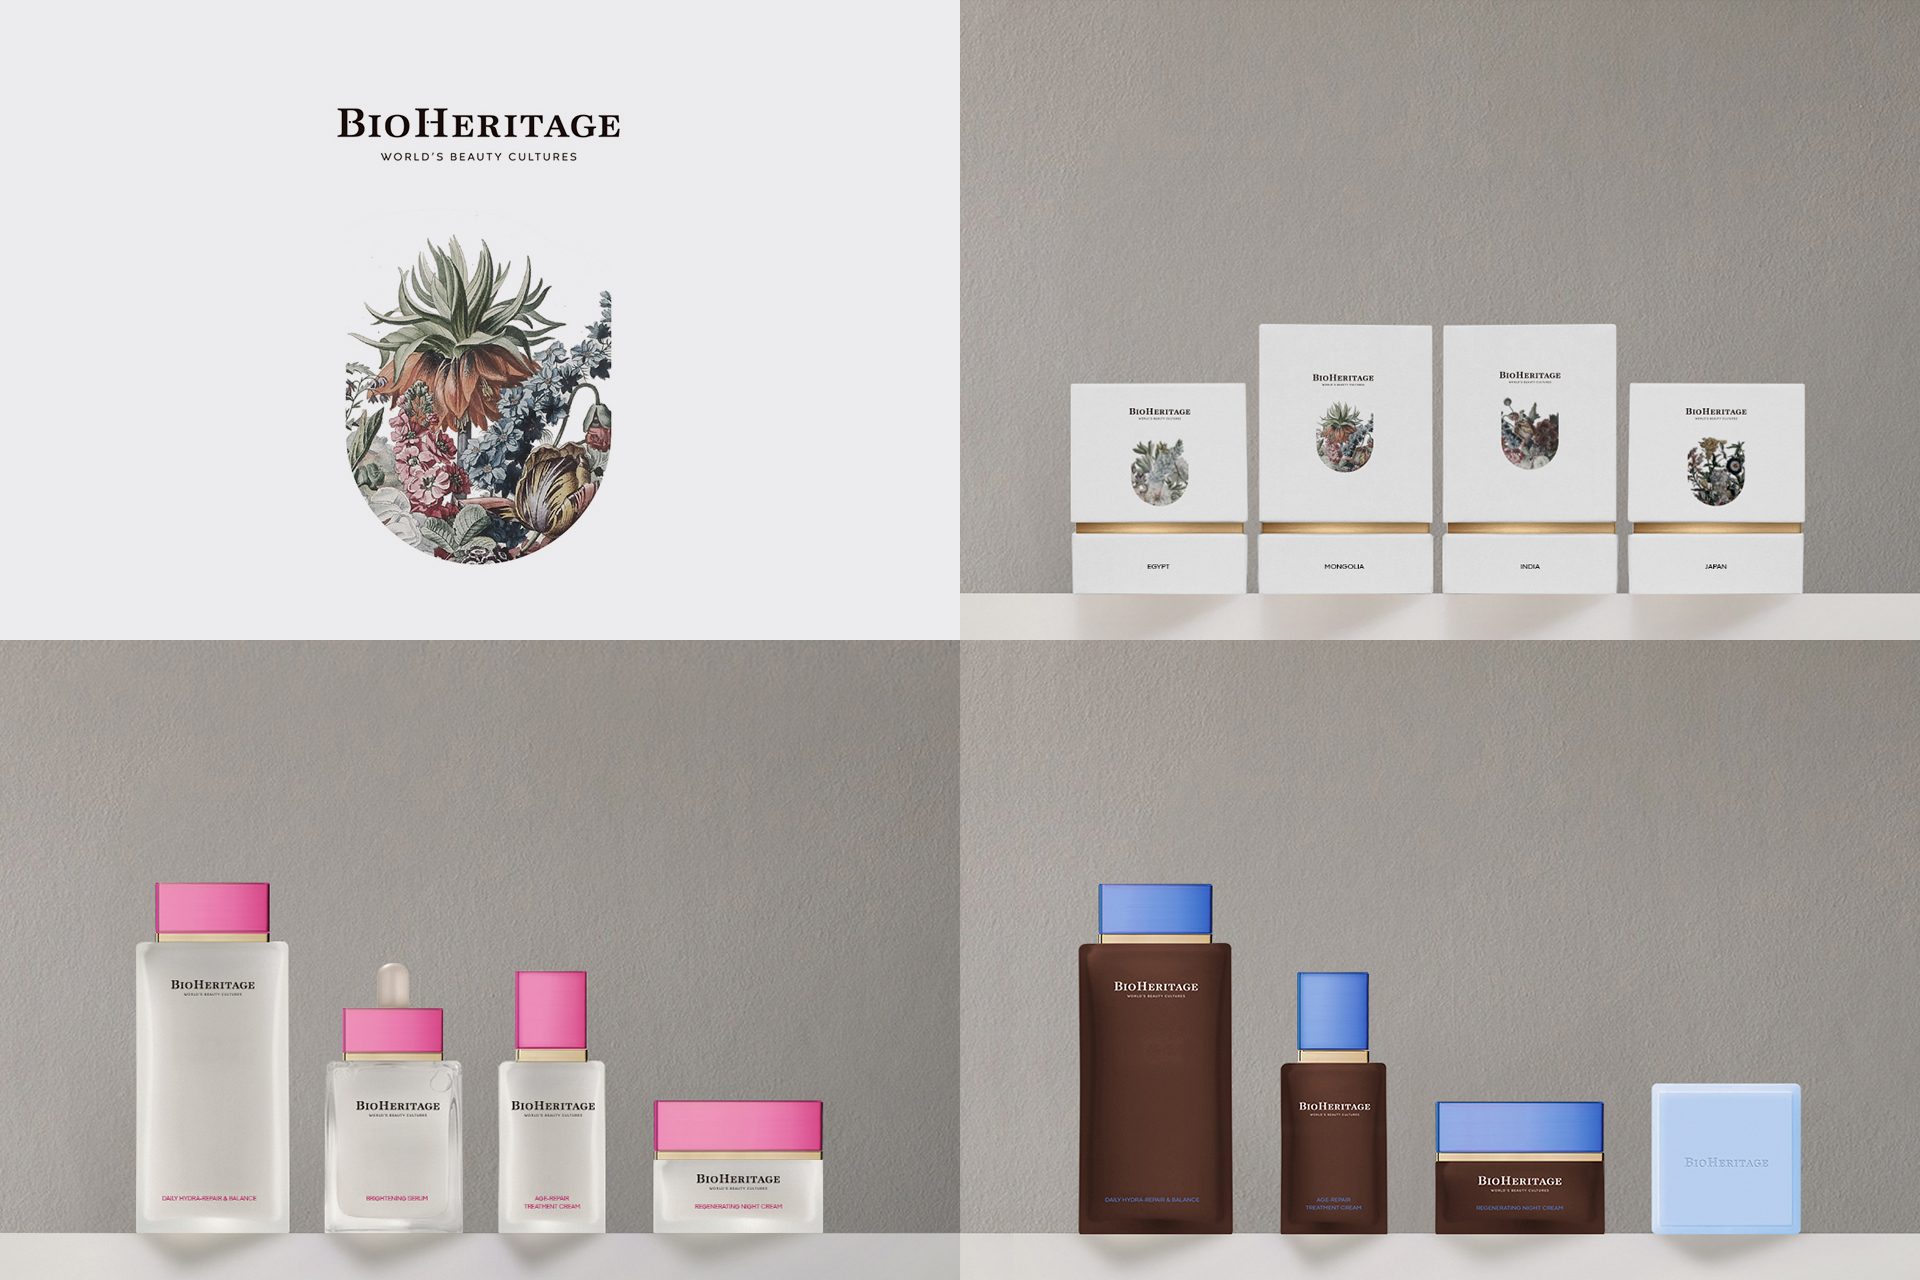 Bioheritage Branding, Storytelling, Packaging & Product Design by Silenceworks - Creative Work - $i